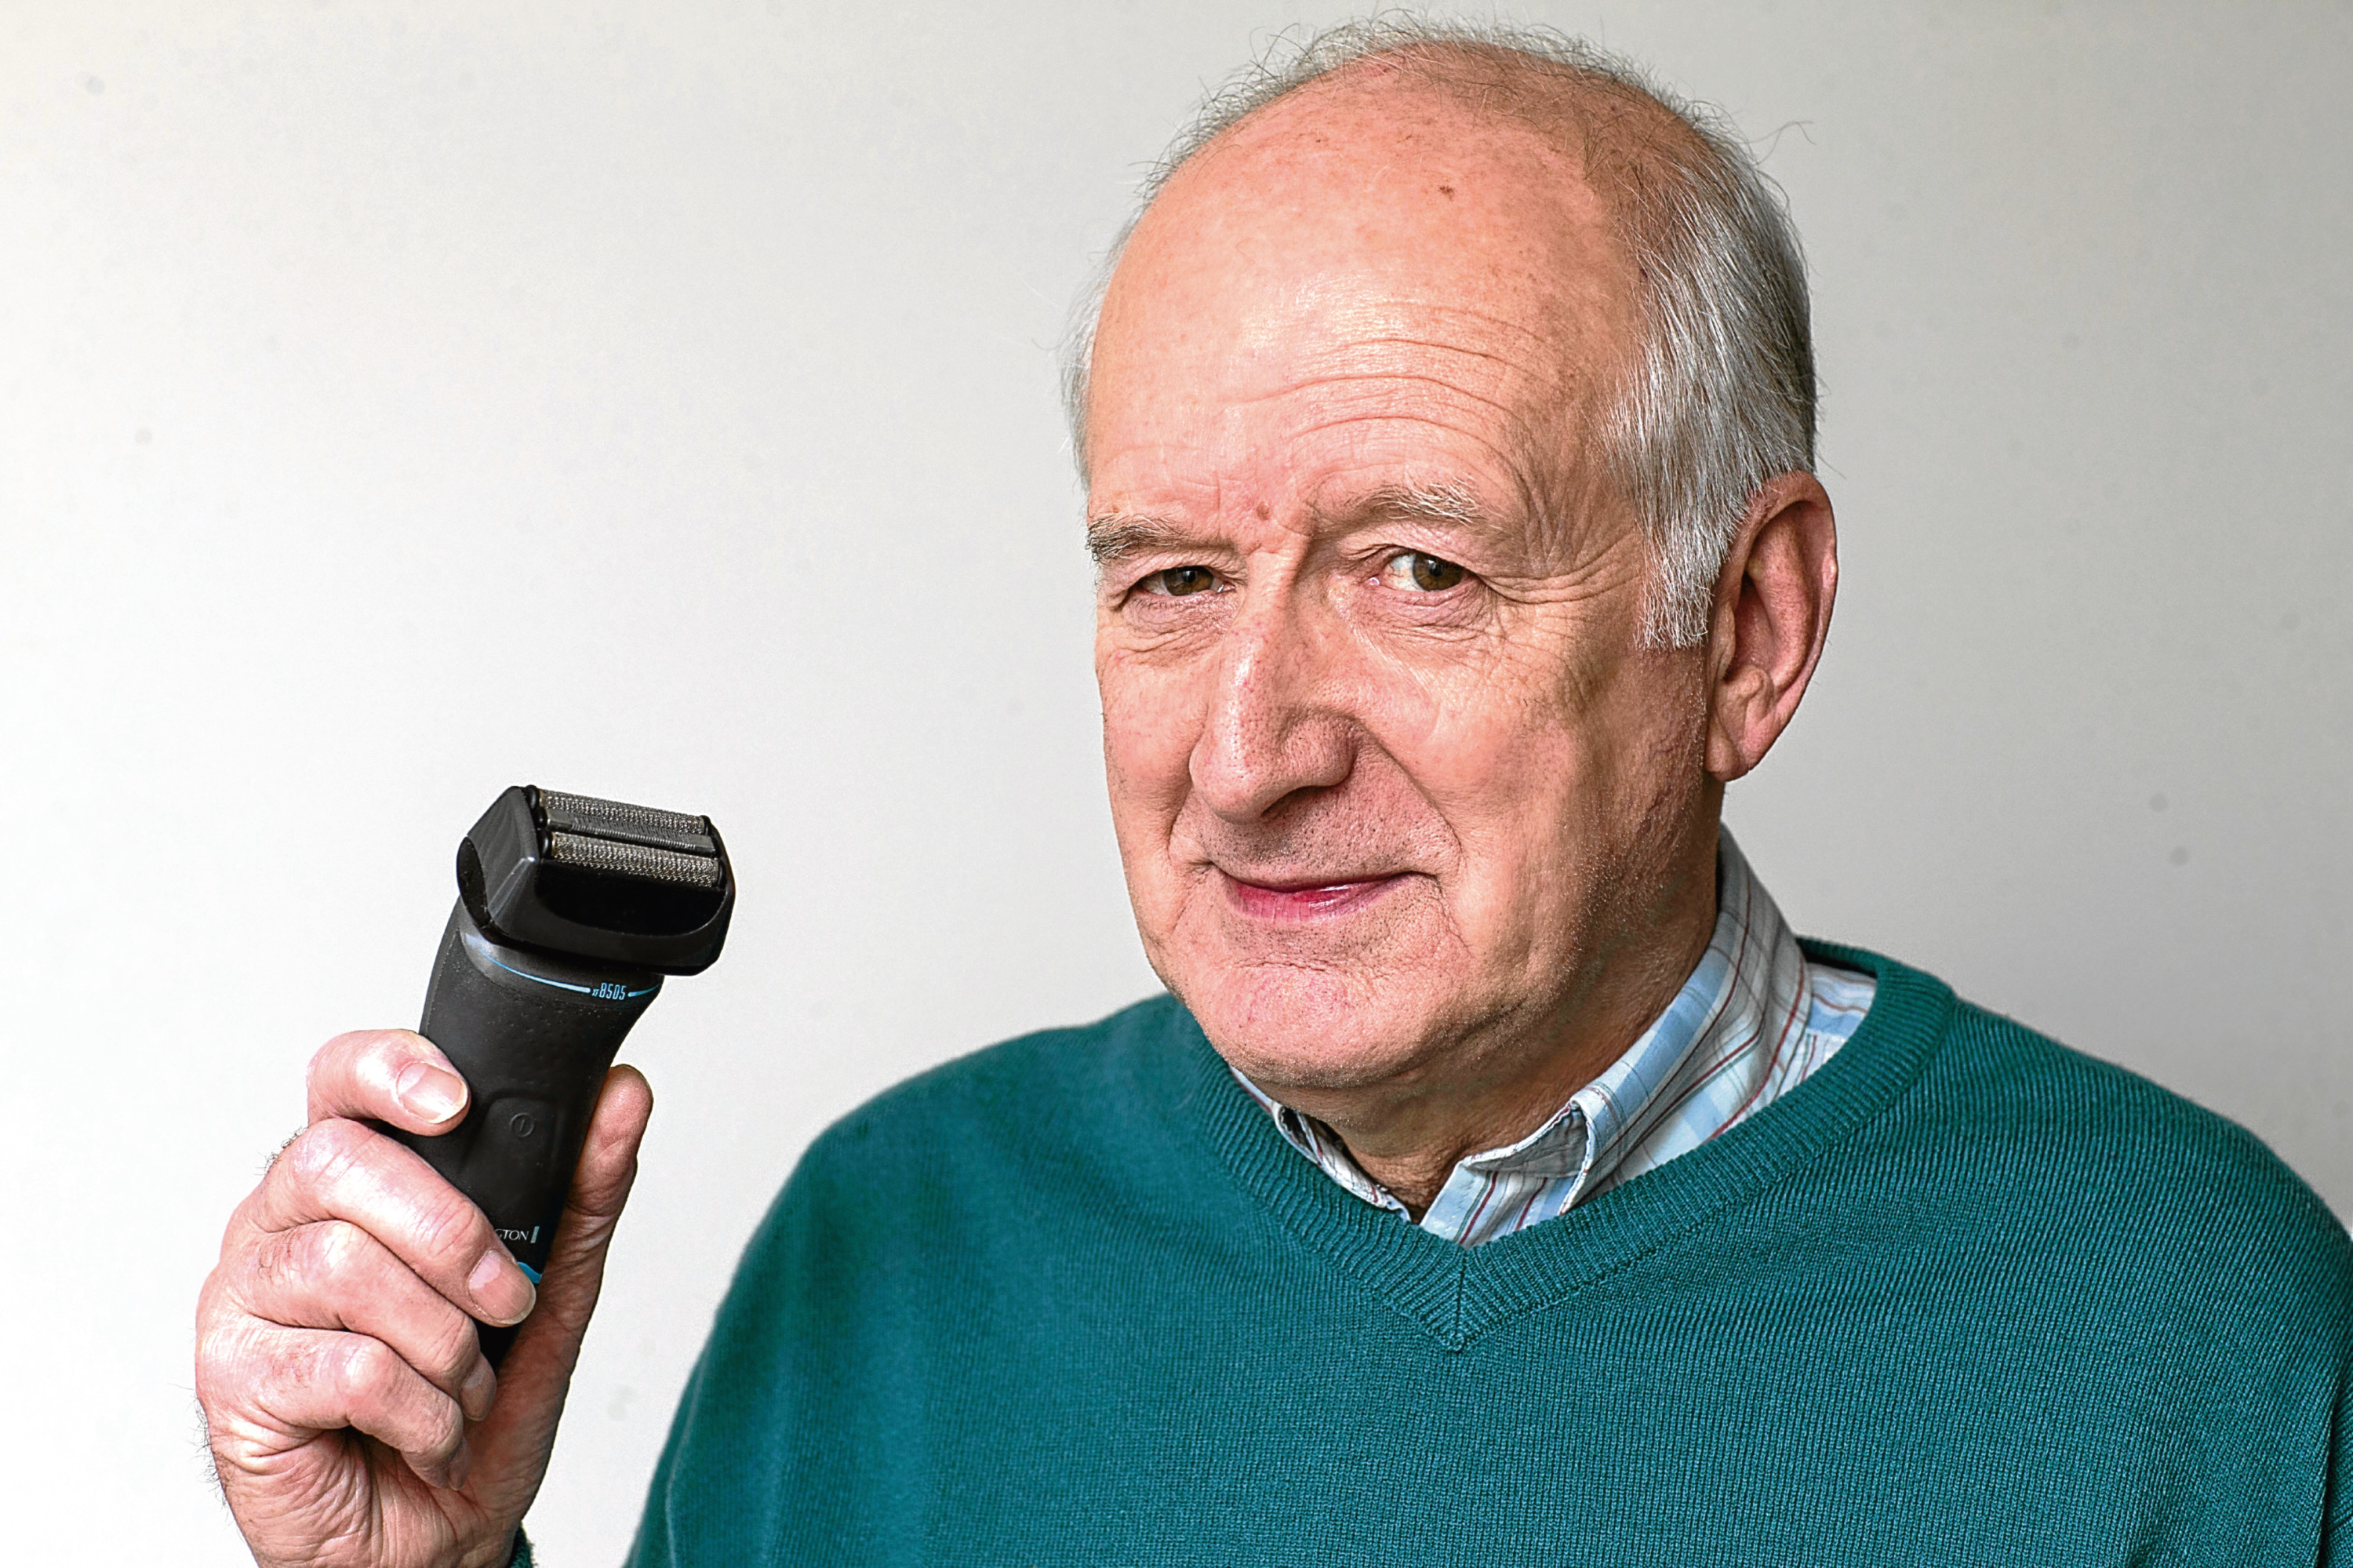 Bill Moir from Westhill bought an Remington electric shaver and had a problem getting replacement parts (Derek Ironside / Newsline Media)